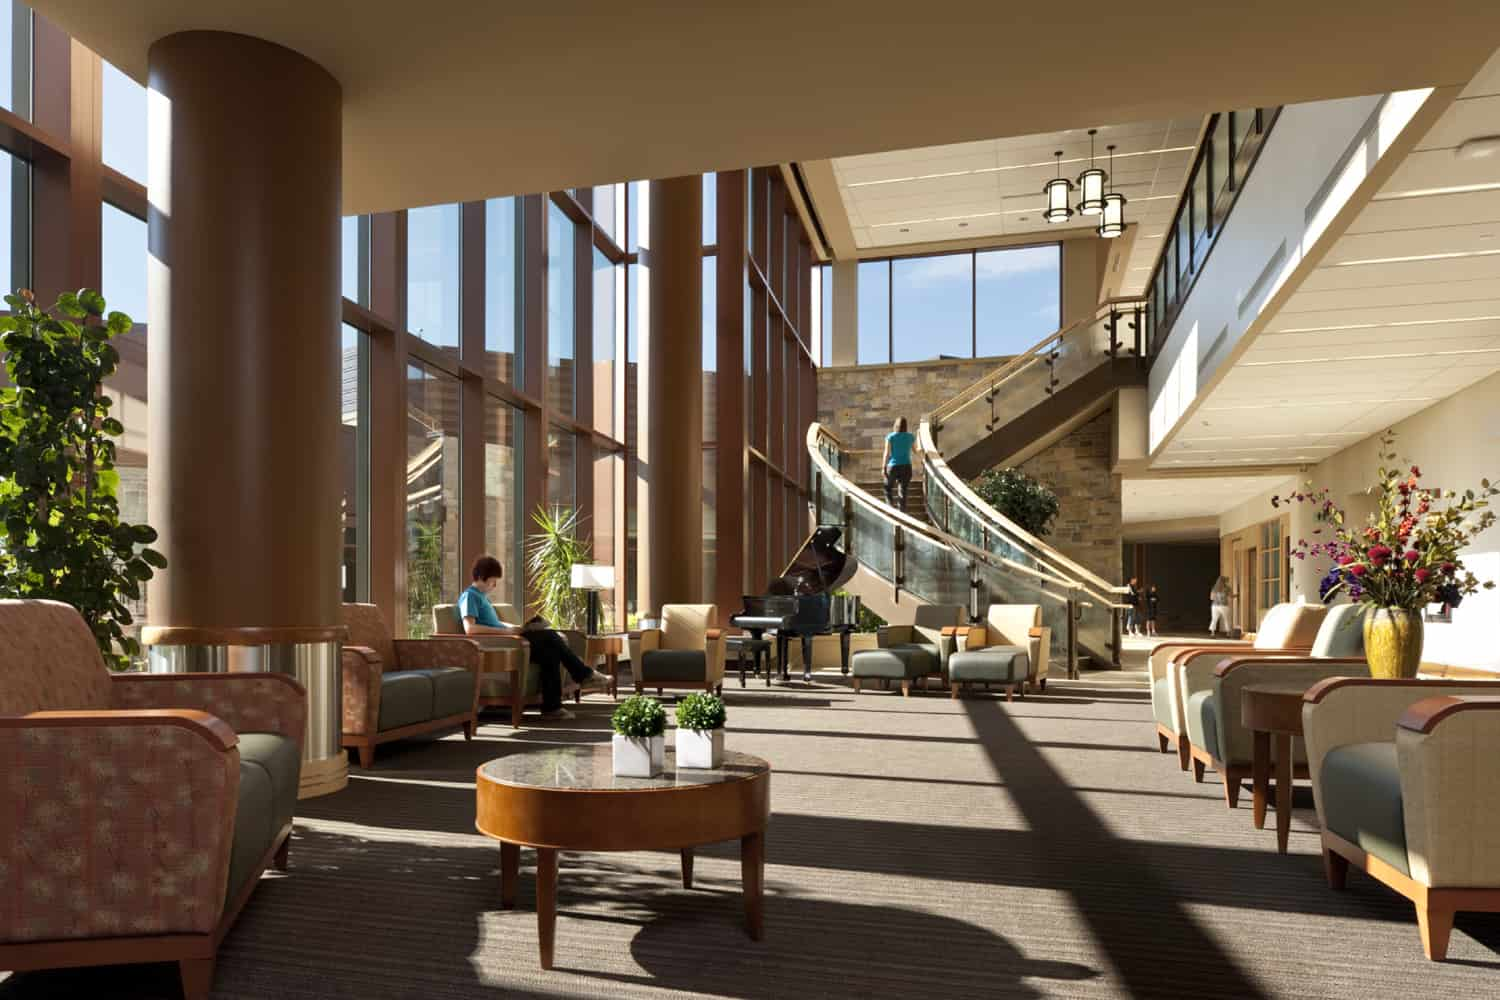 Maple Grove Hospital's lobby with people.